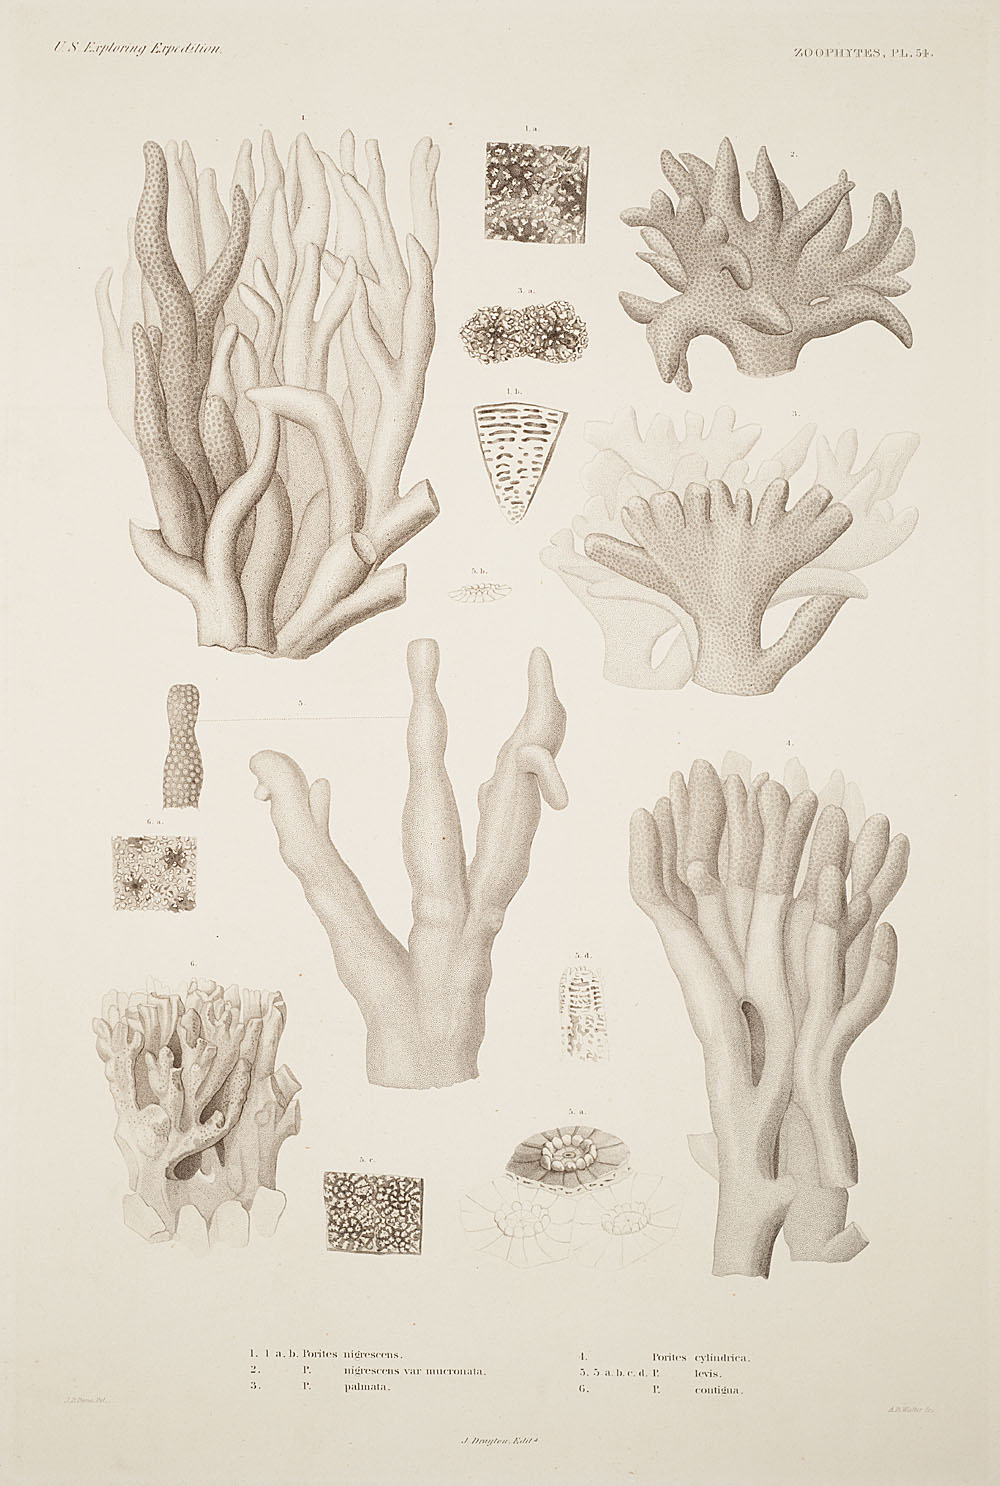 Zoophytes, Plate 54,  Image number:sil19-09-125b